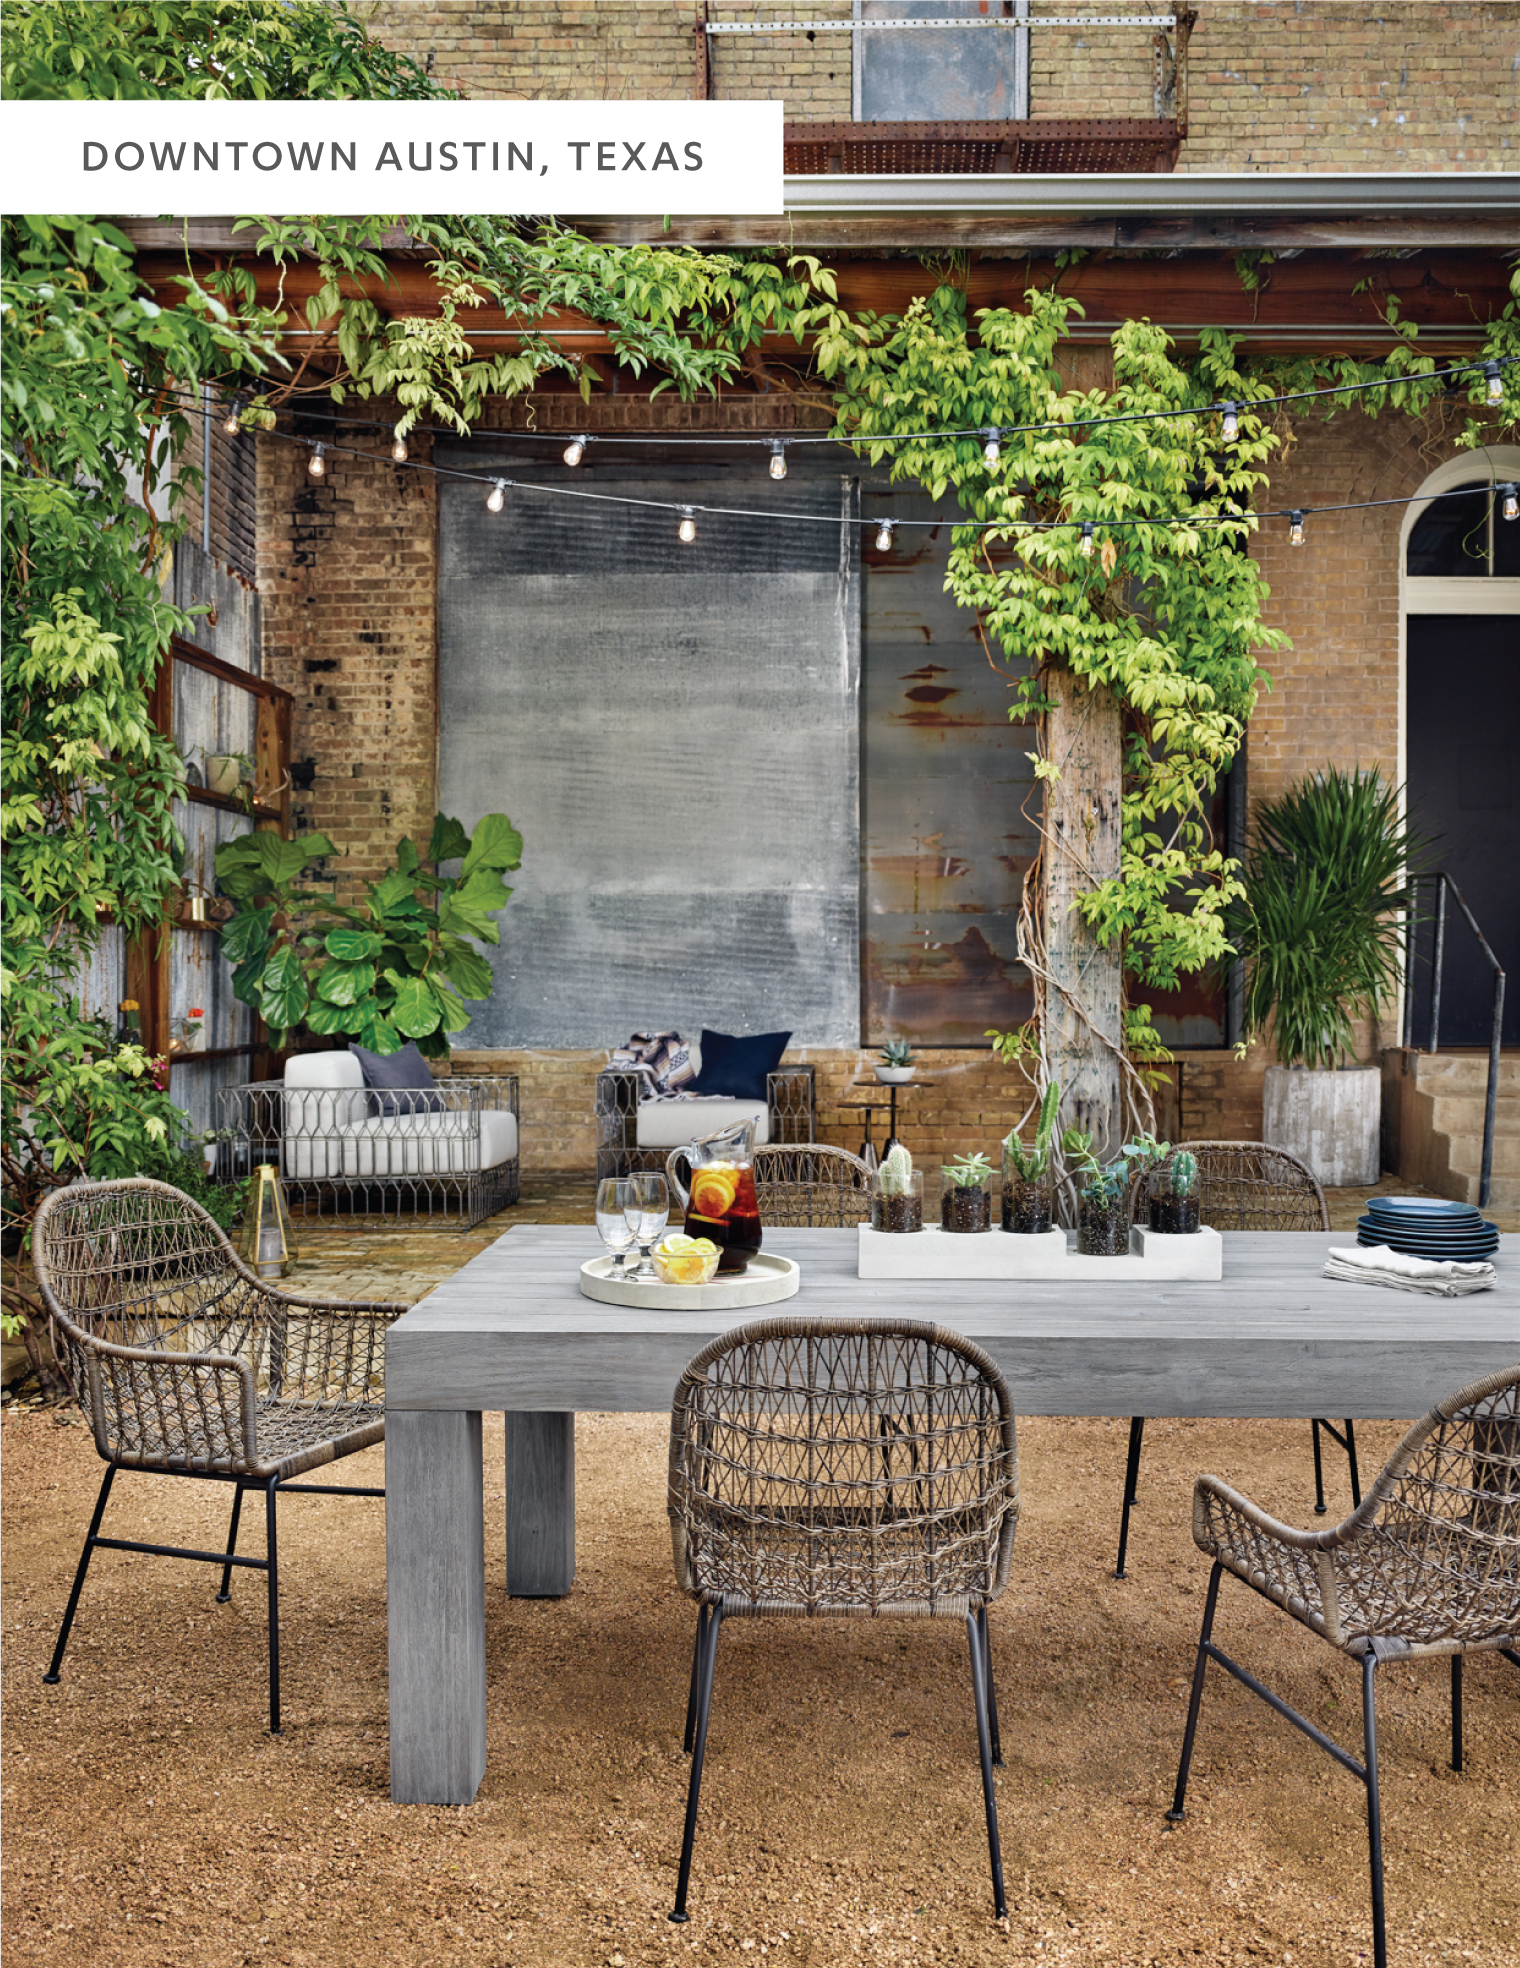 Local Event Space, Palazzo Lavaca, Laid The Perfect Framework For Our New  Outdoor Items. Its Courtyardu0027s Lush Greenery And Gravel Terrain U2013 A Dreamy  Oasis ...